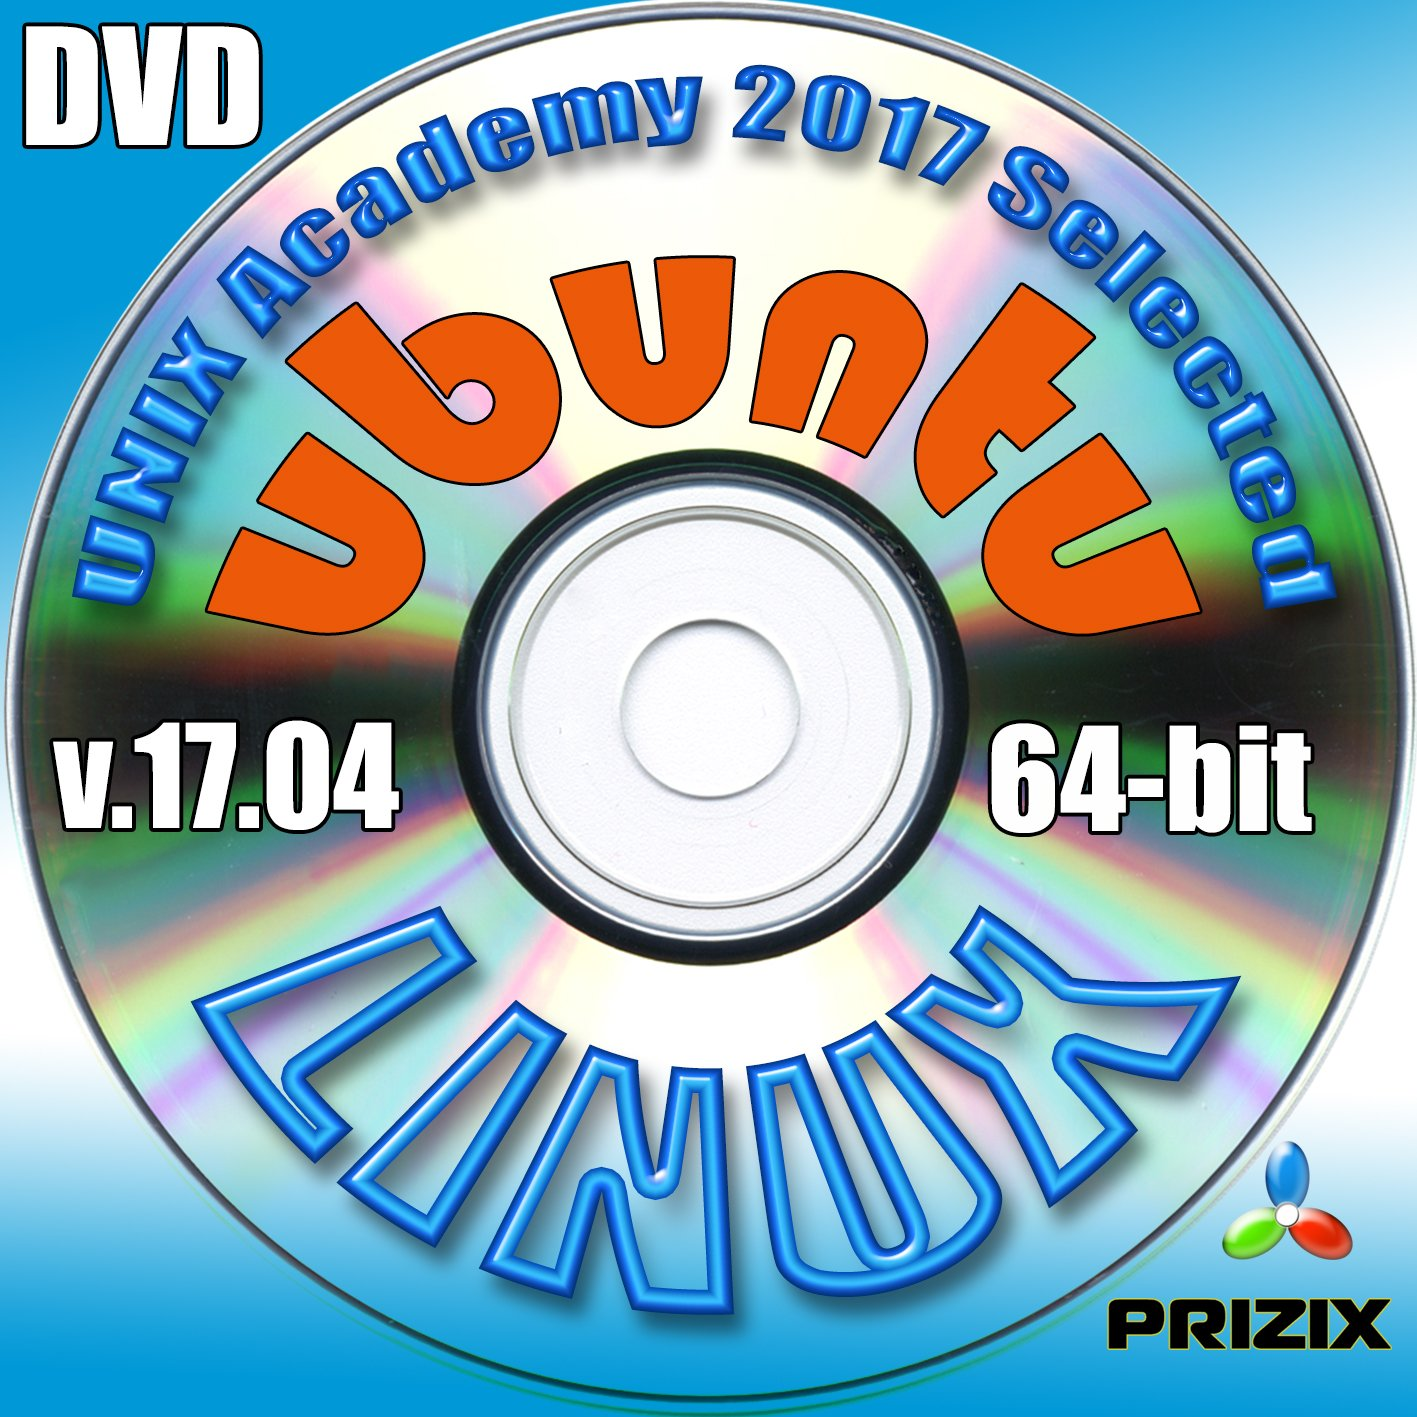 Linux on 16Gb USB Flash and 5-DVDs, Installation and Reference Set, Newest Linux Release 64-bit: CentOS 7, Ubuntu 17.04, Debian 9 and Fedora 26 by PRIZIX